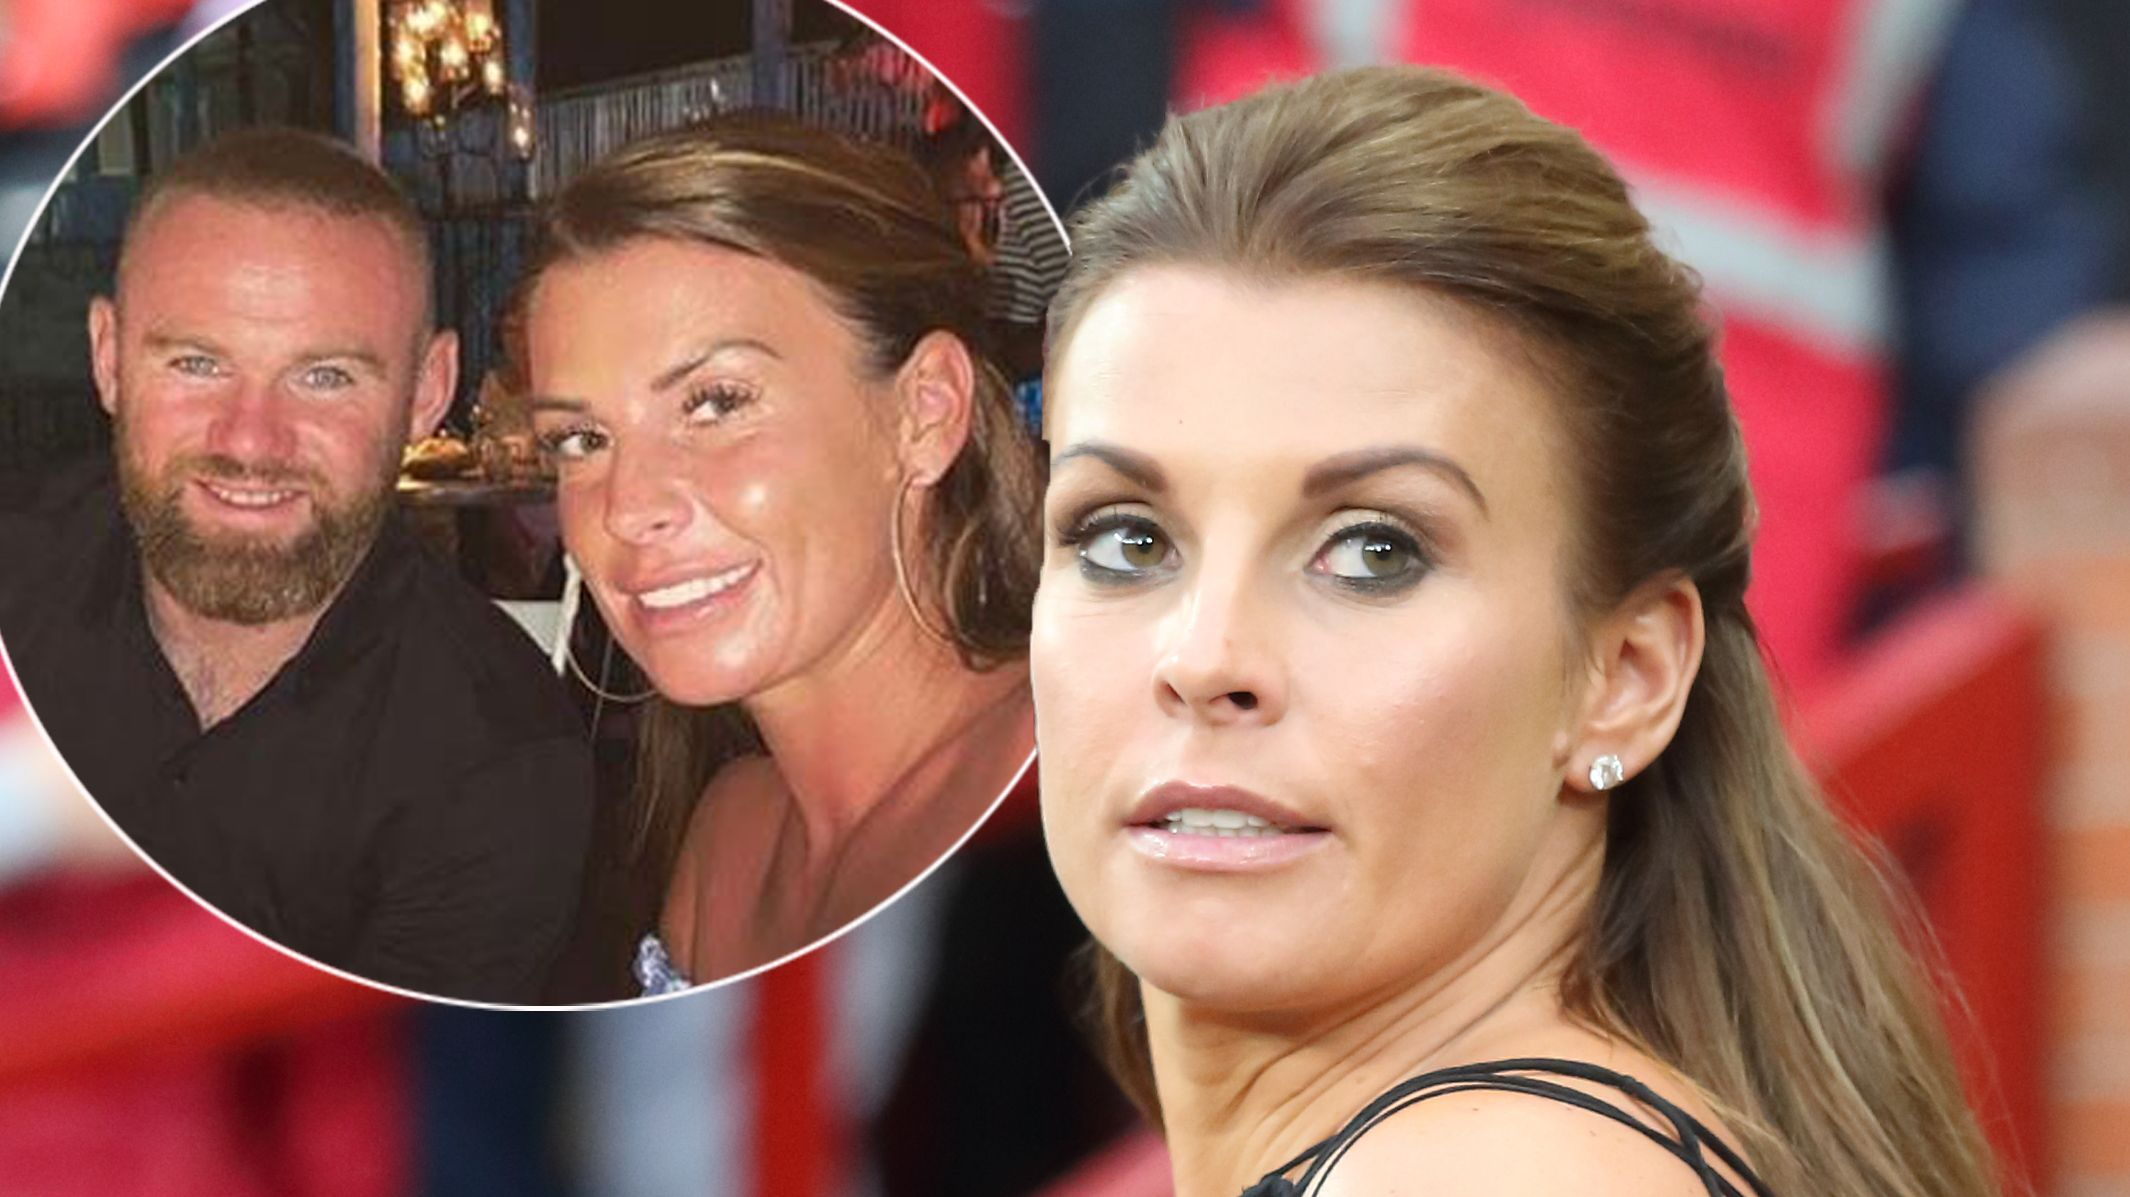 Coleen Rooney hits back at pregnancy rumours after new photos